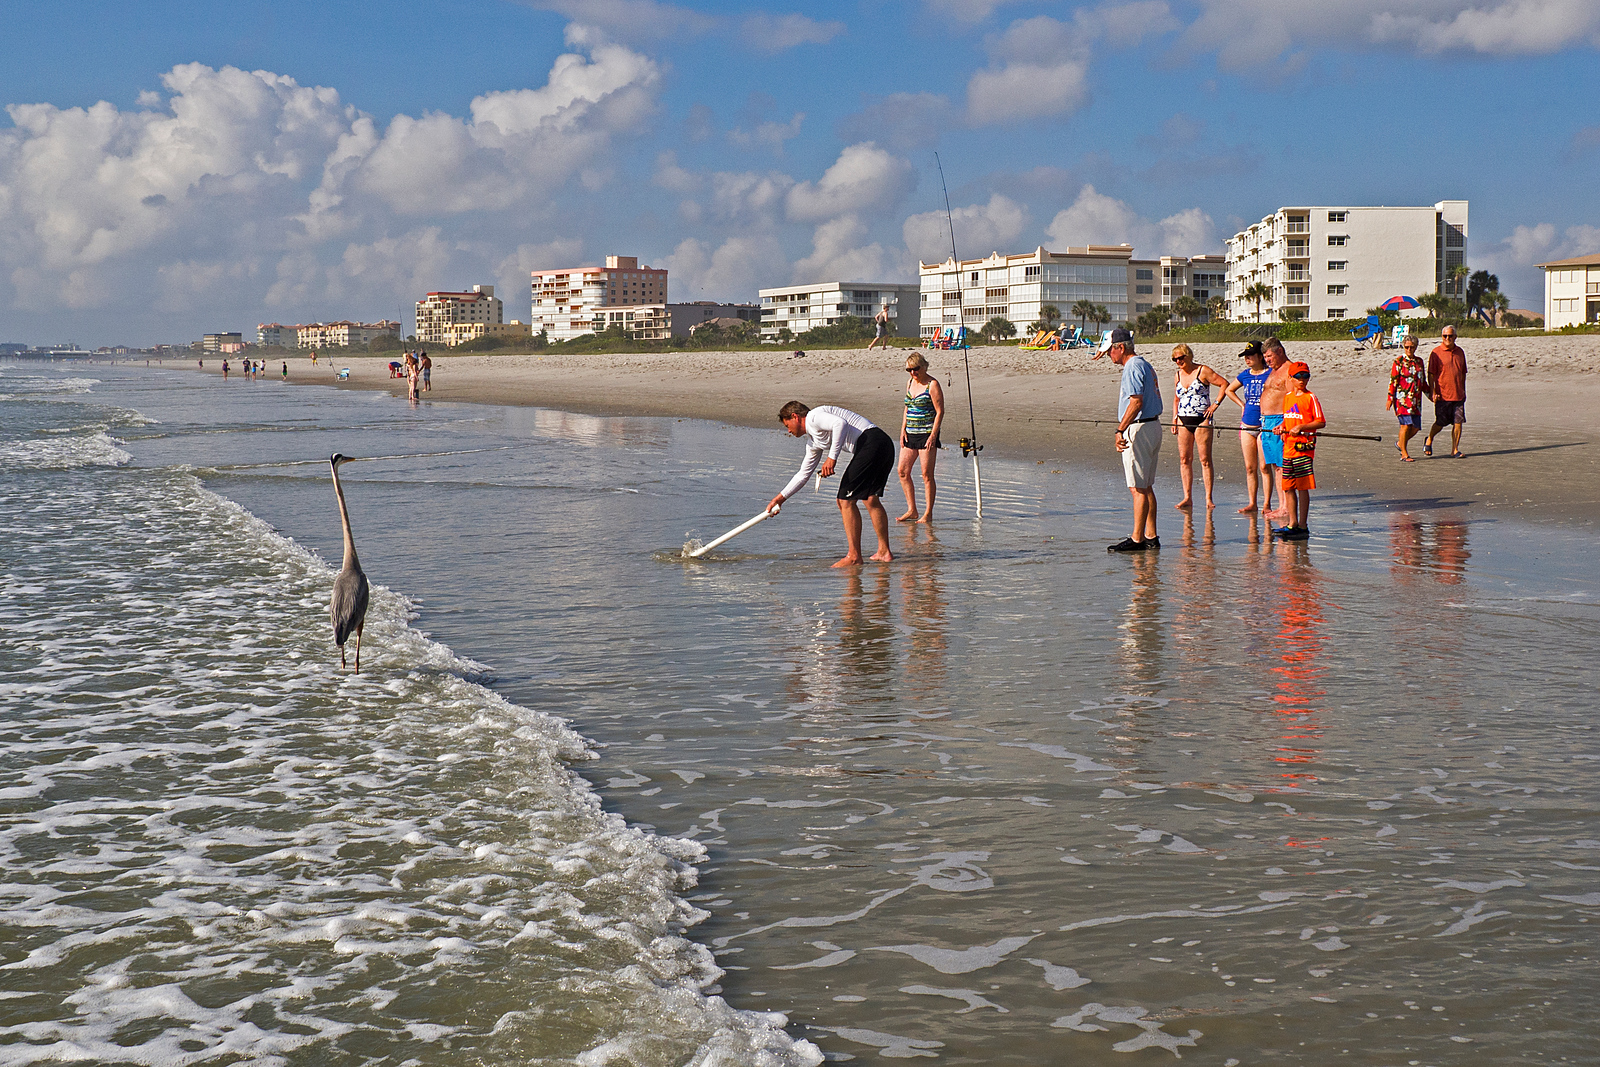 Several people plus a curious heron watching fishermen at the beach